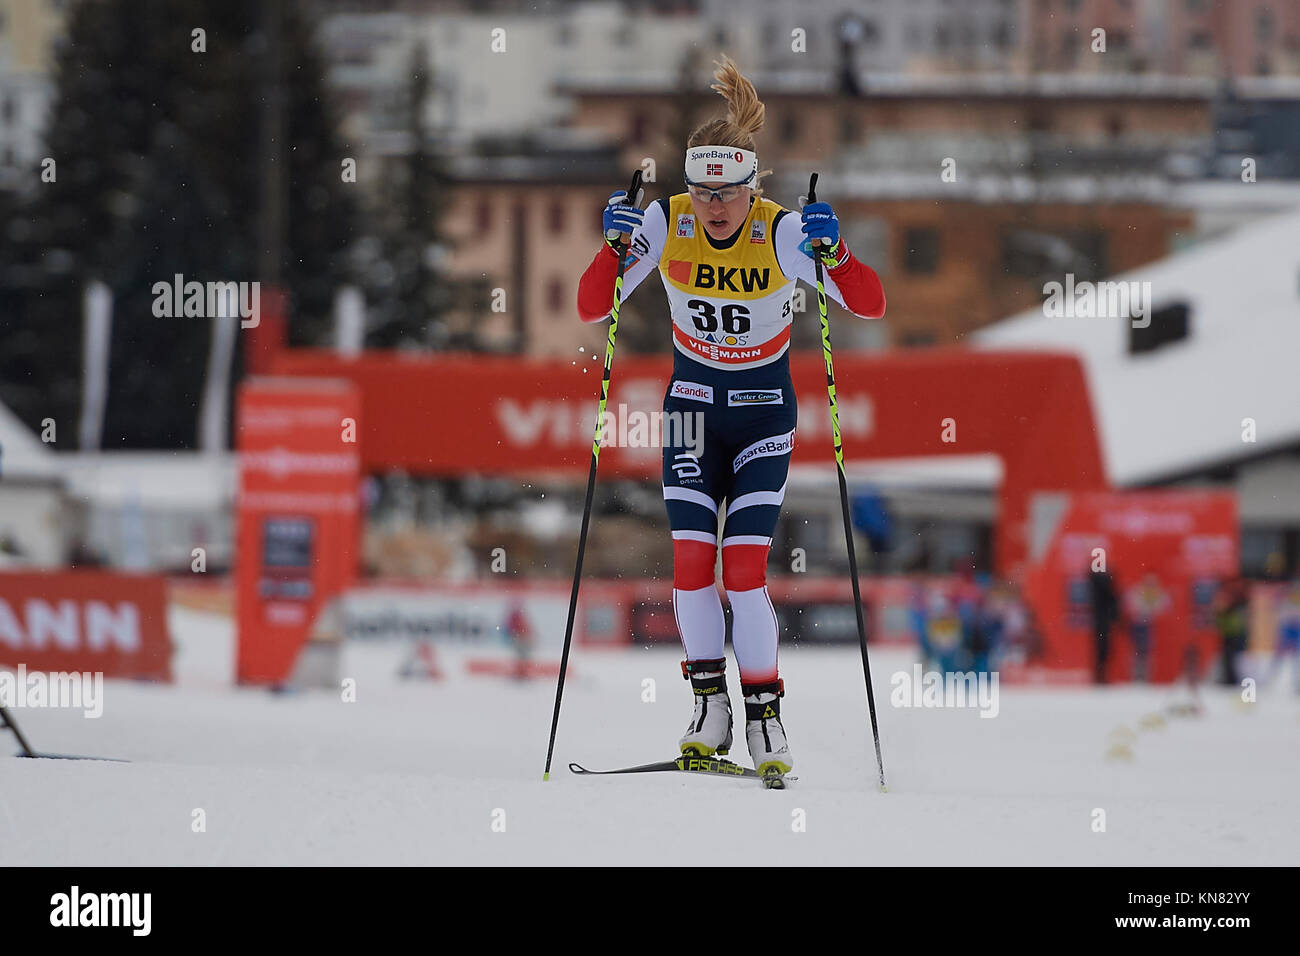 Davos, Switzerland, 10th December 2017. HAGA Ragnhild (NOR) during the Ladies' 10 km F competition at the FIS Cross - Stock Image